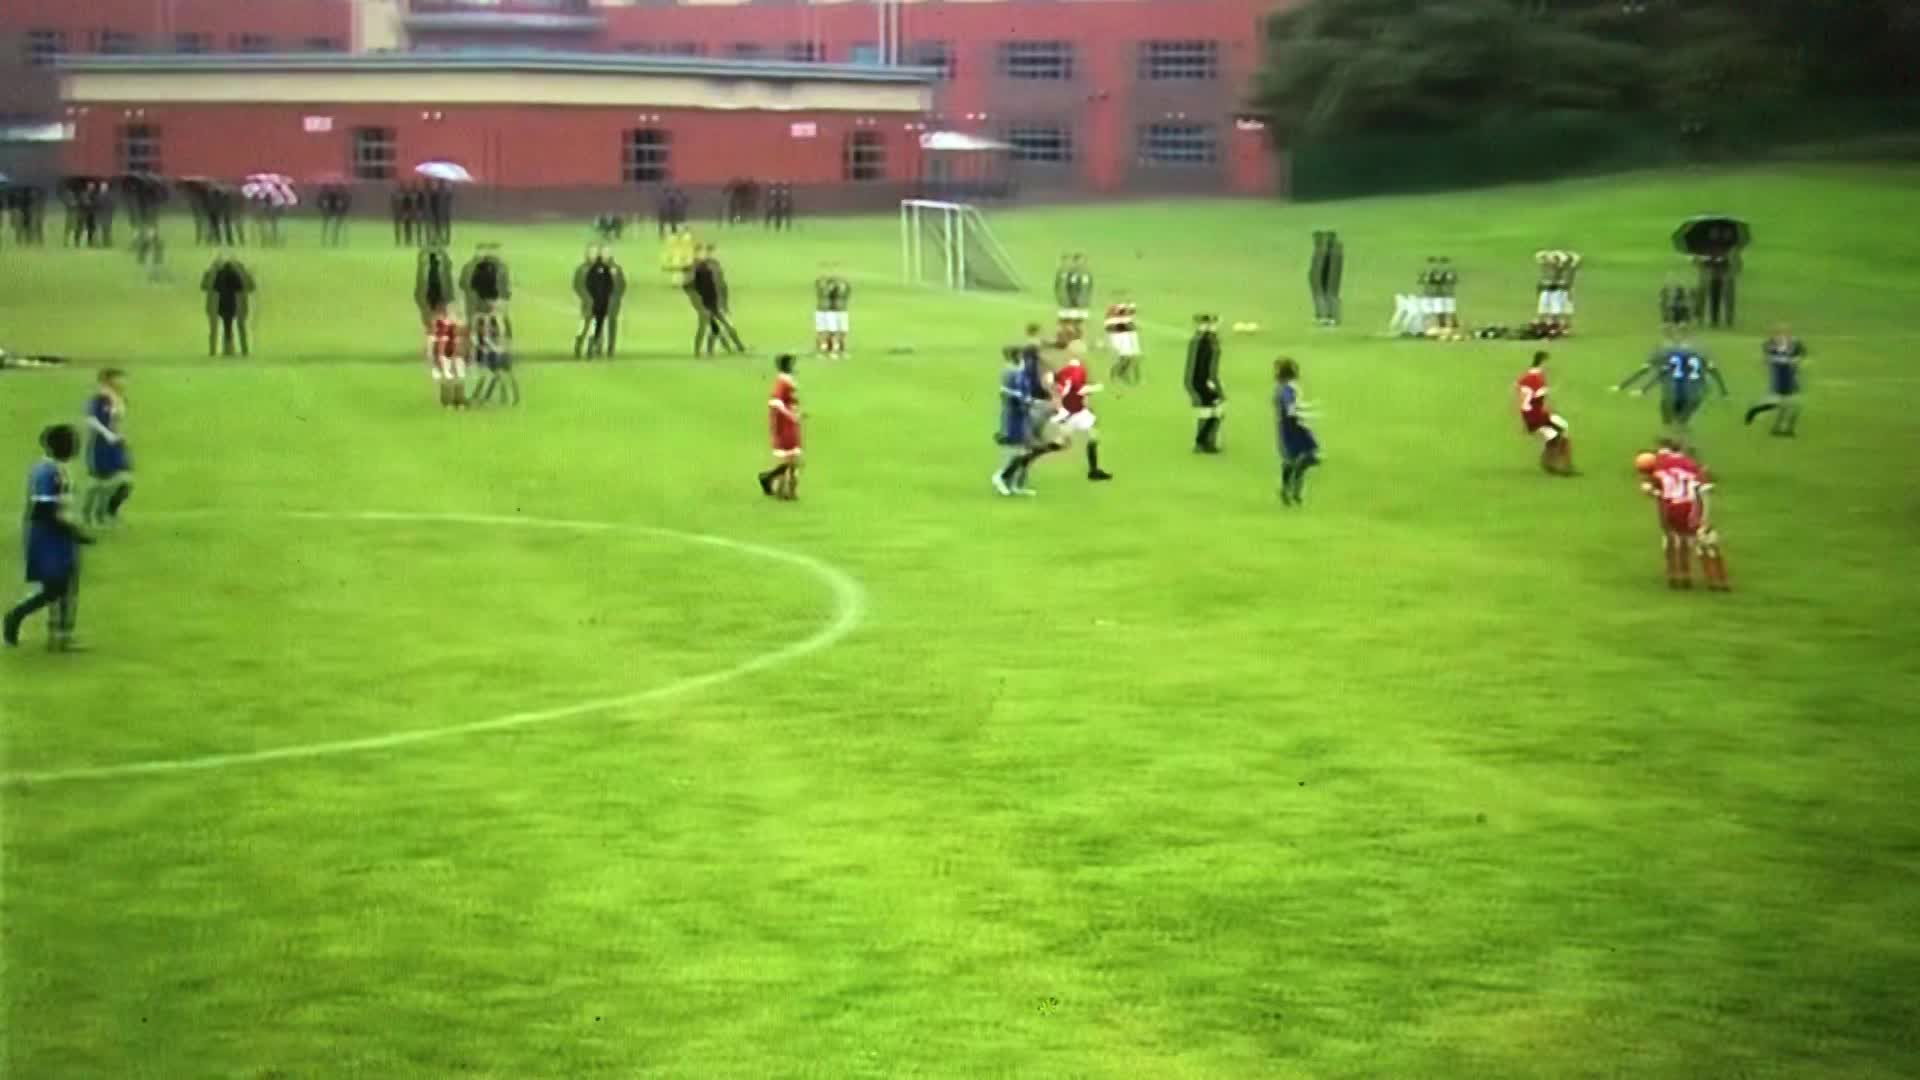 12 Year Old Brandon Wust Scoring against Wals